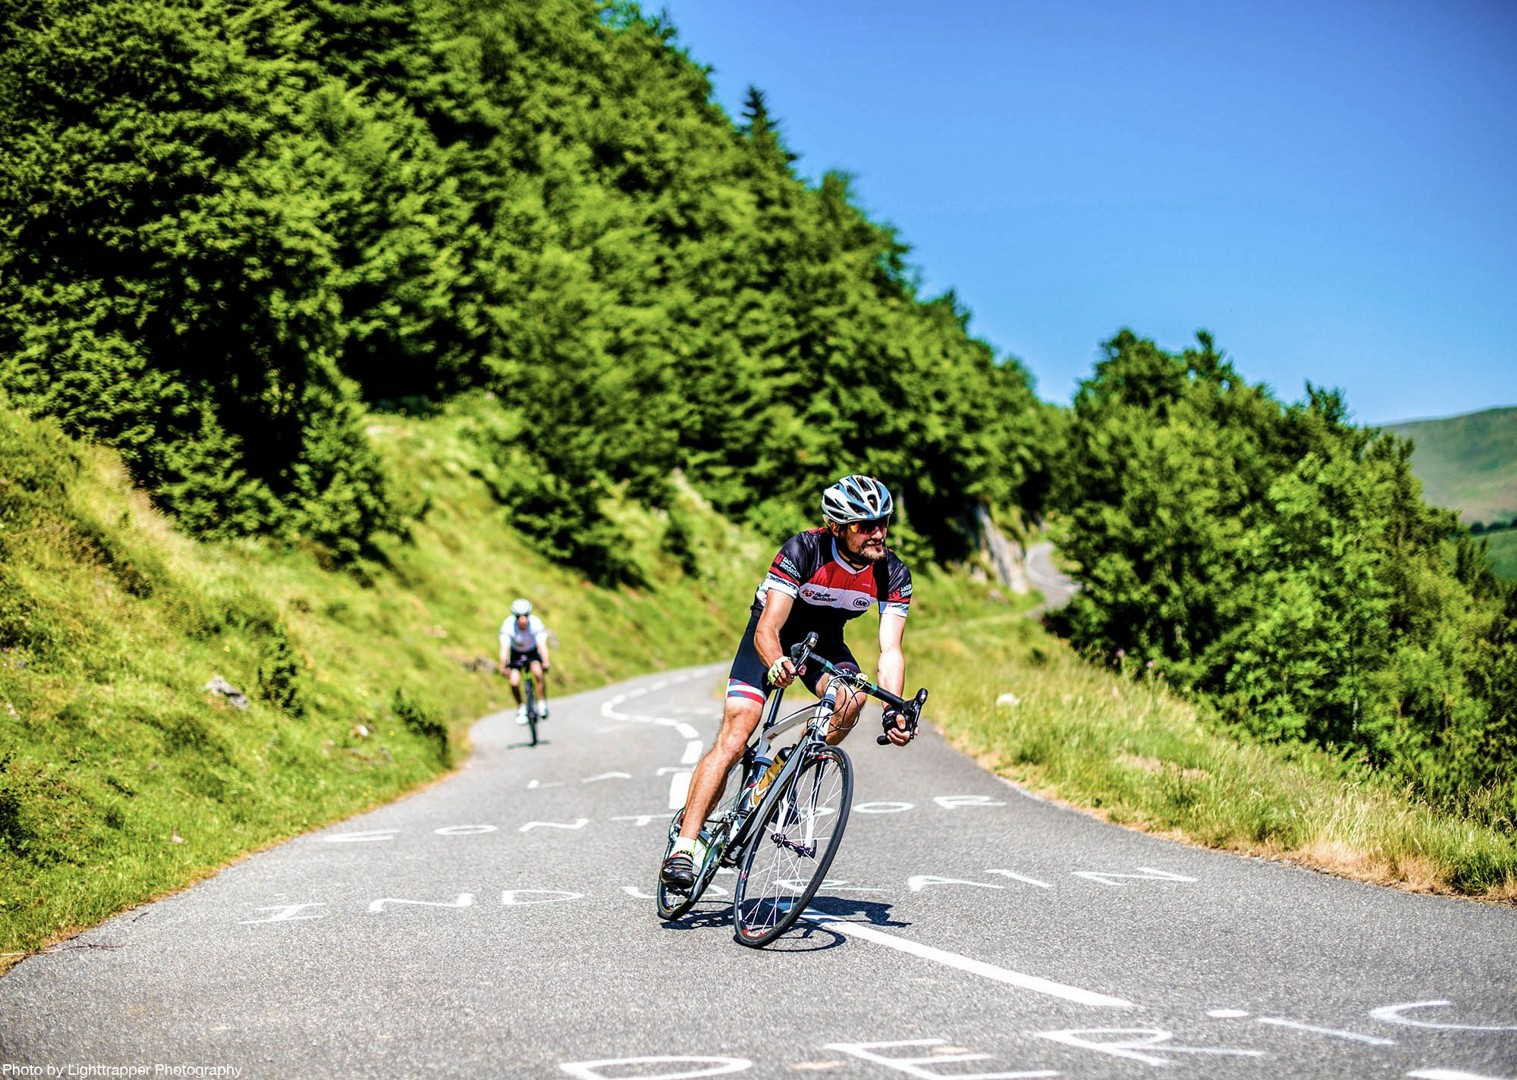 day6_072.jpg - France - Pyrenees Fitness Week - Guided Road Cycling Holiday (Grade 3-4) - Road Cycling